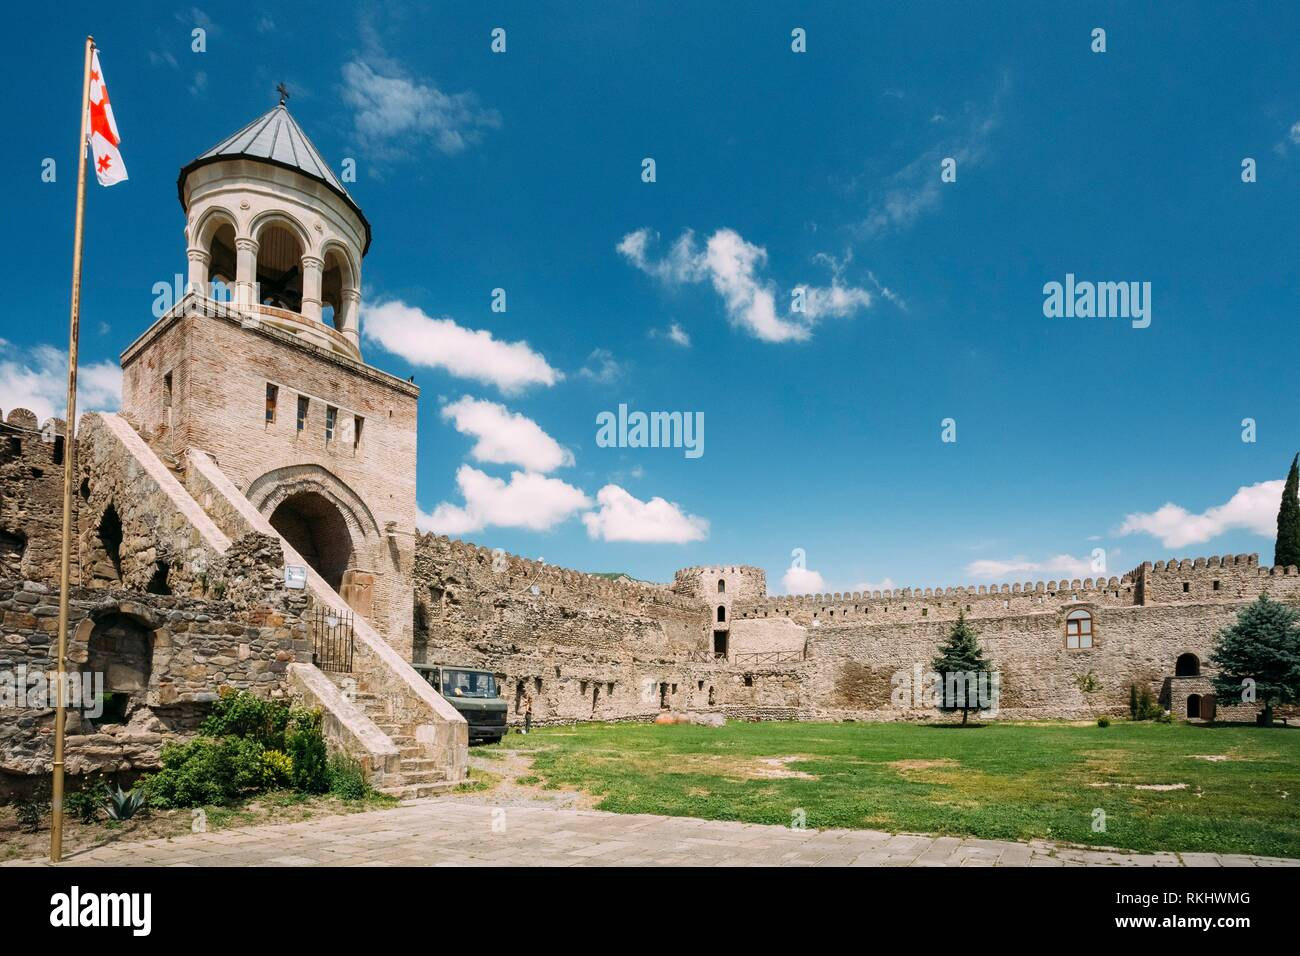 Mtskheta, Georgia. The View Of Inner Courtyard With A Tower Of Svetitskhoveli Cathedral Of The Living Pillar Surrounded By Gray Stone Fortified Wall - Stock Image